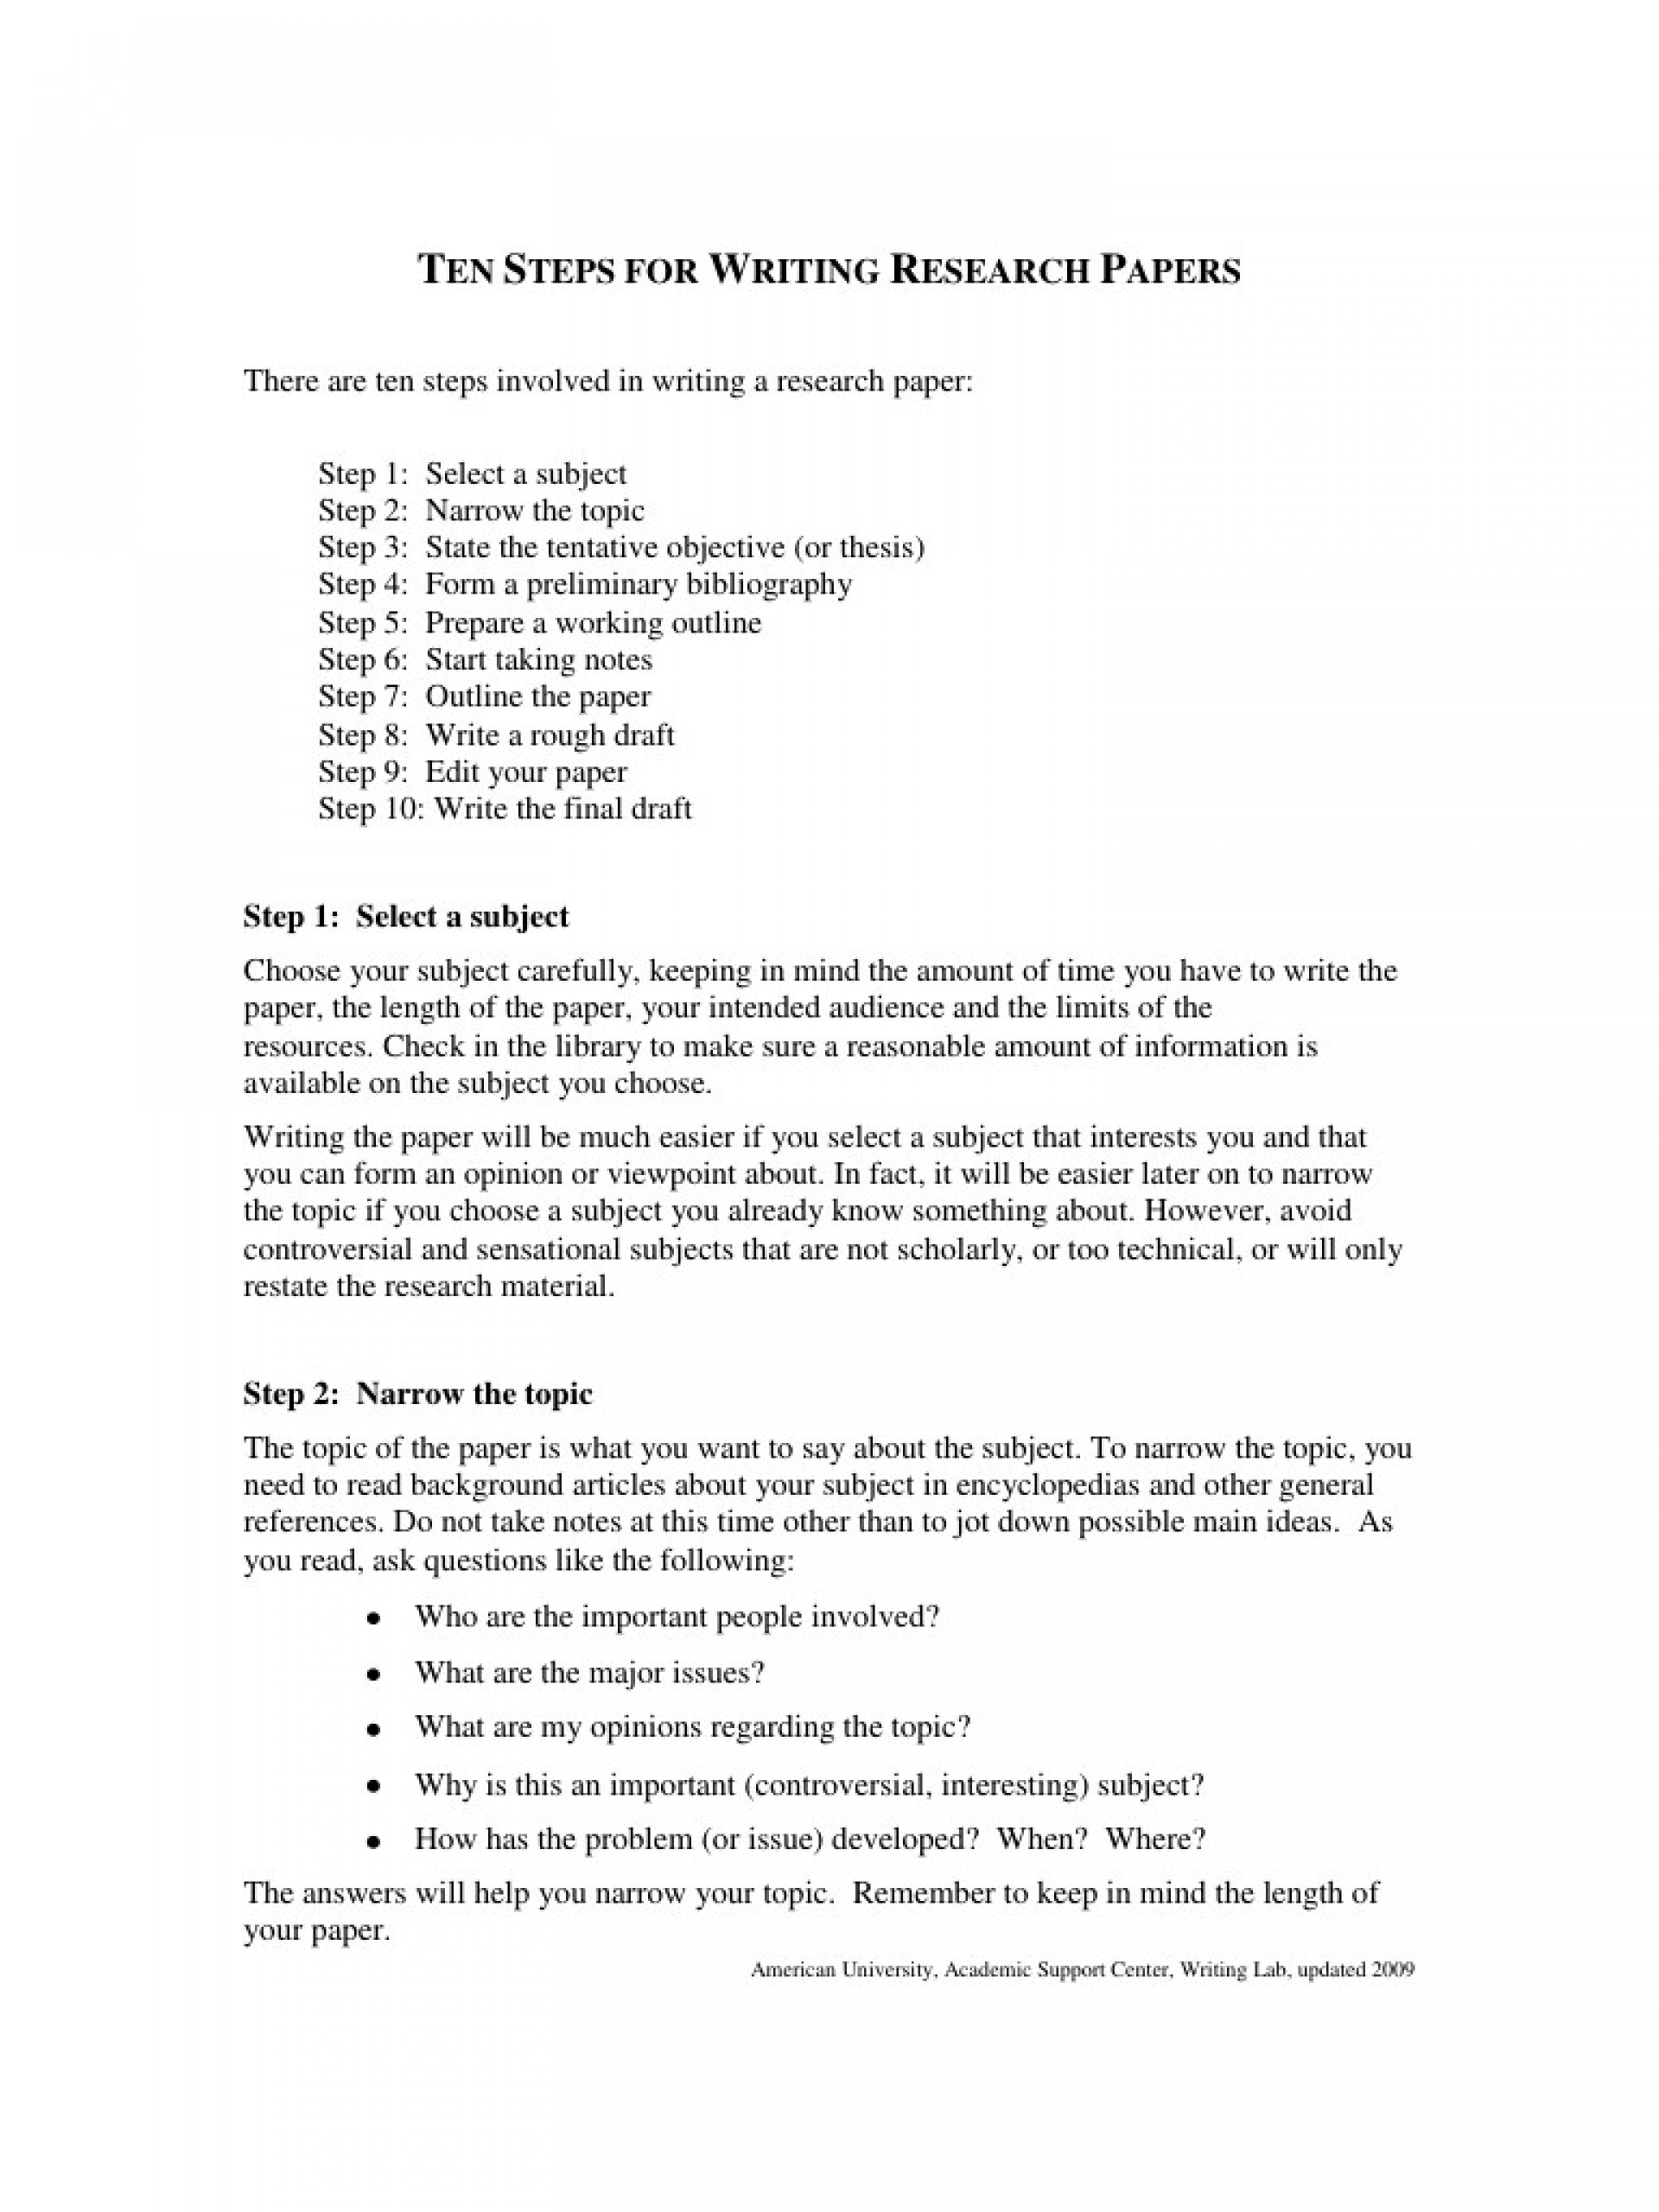 010 Preview Ten Steps For Writing Researchs Frightening Research Paper 12 Papers To A 10 Page 1920